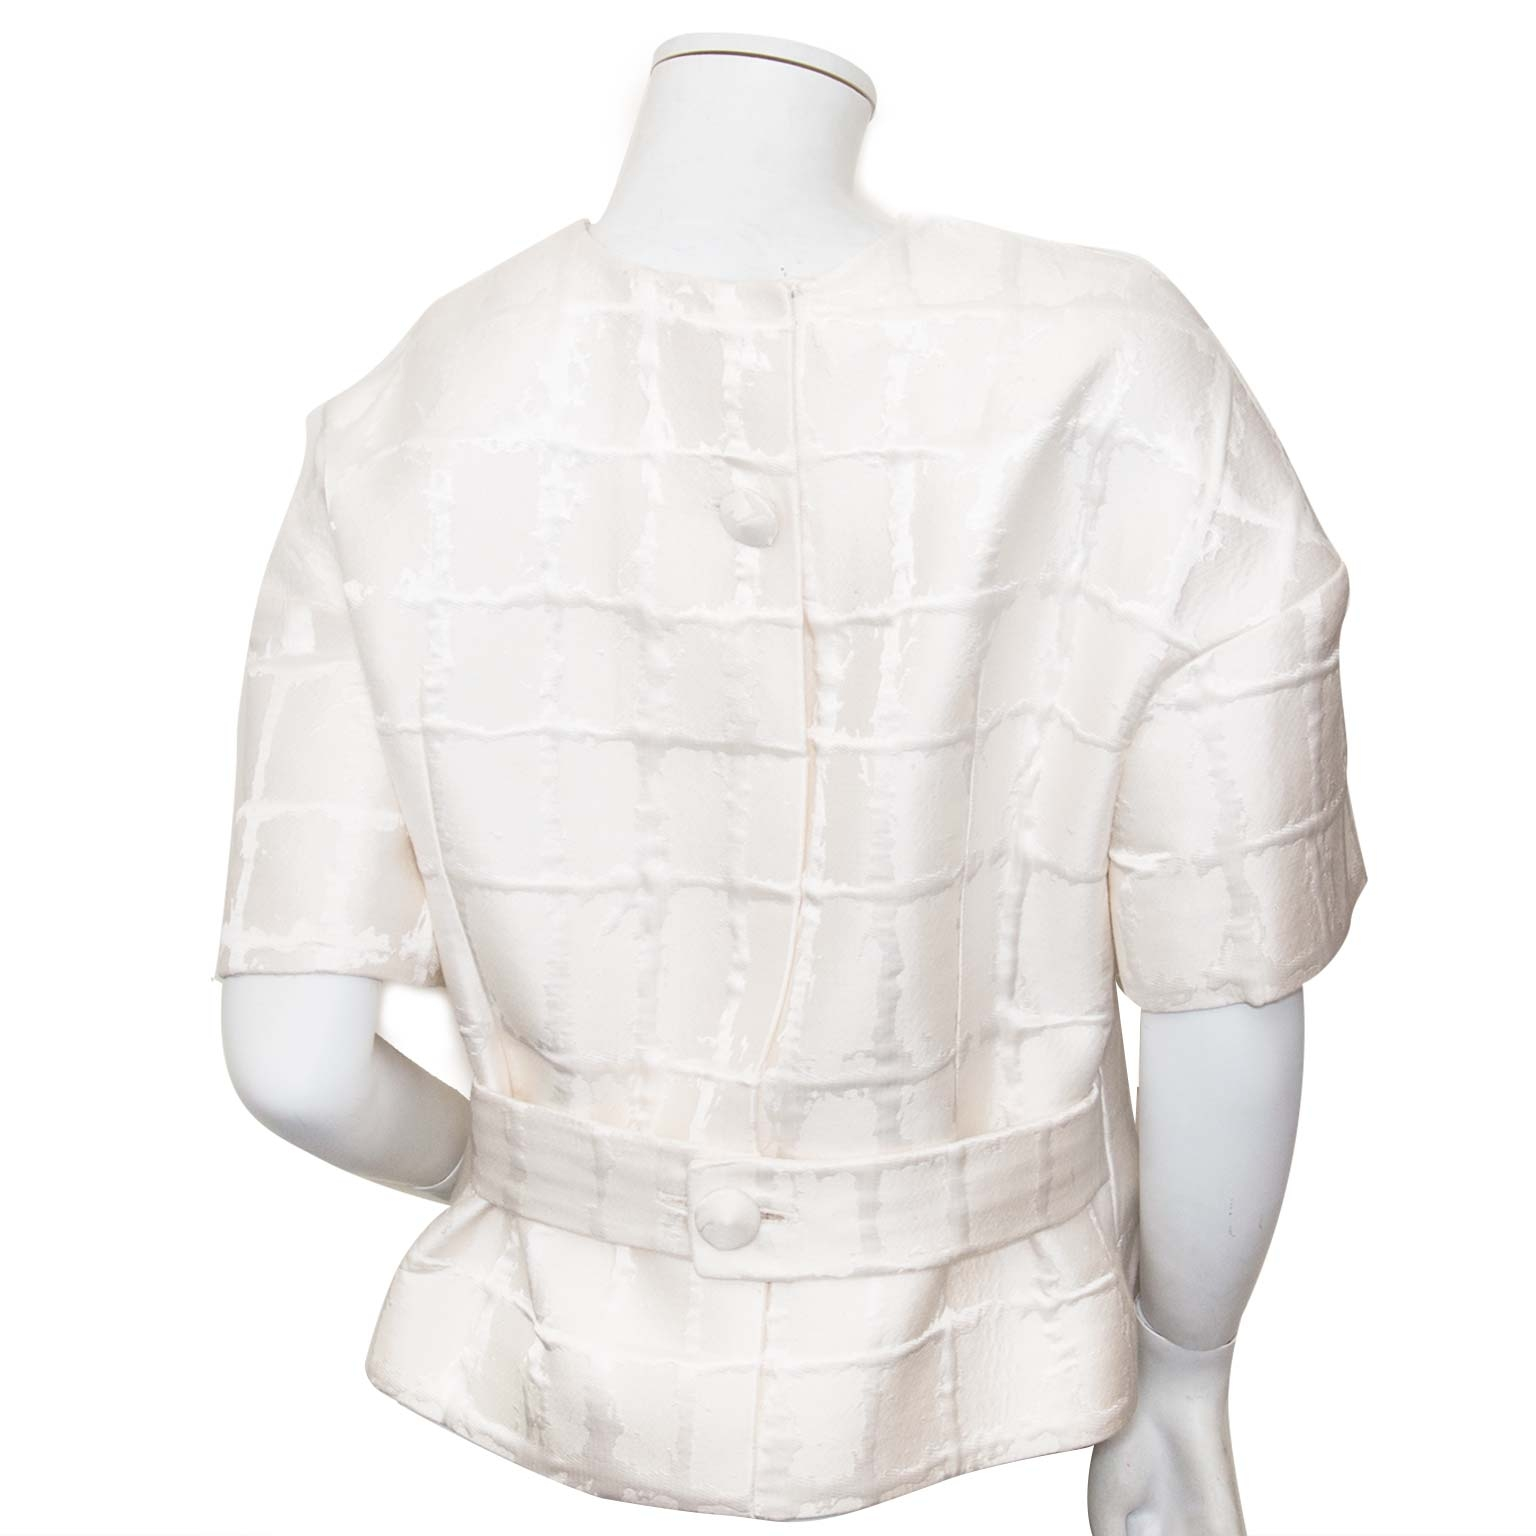 Buy your authentic Balmain Short Sleeve White Belted Blazer